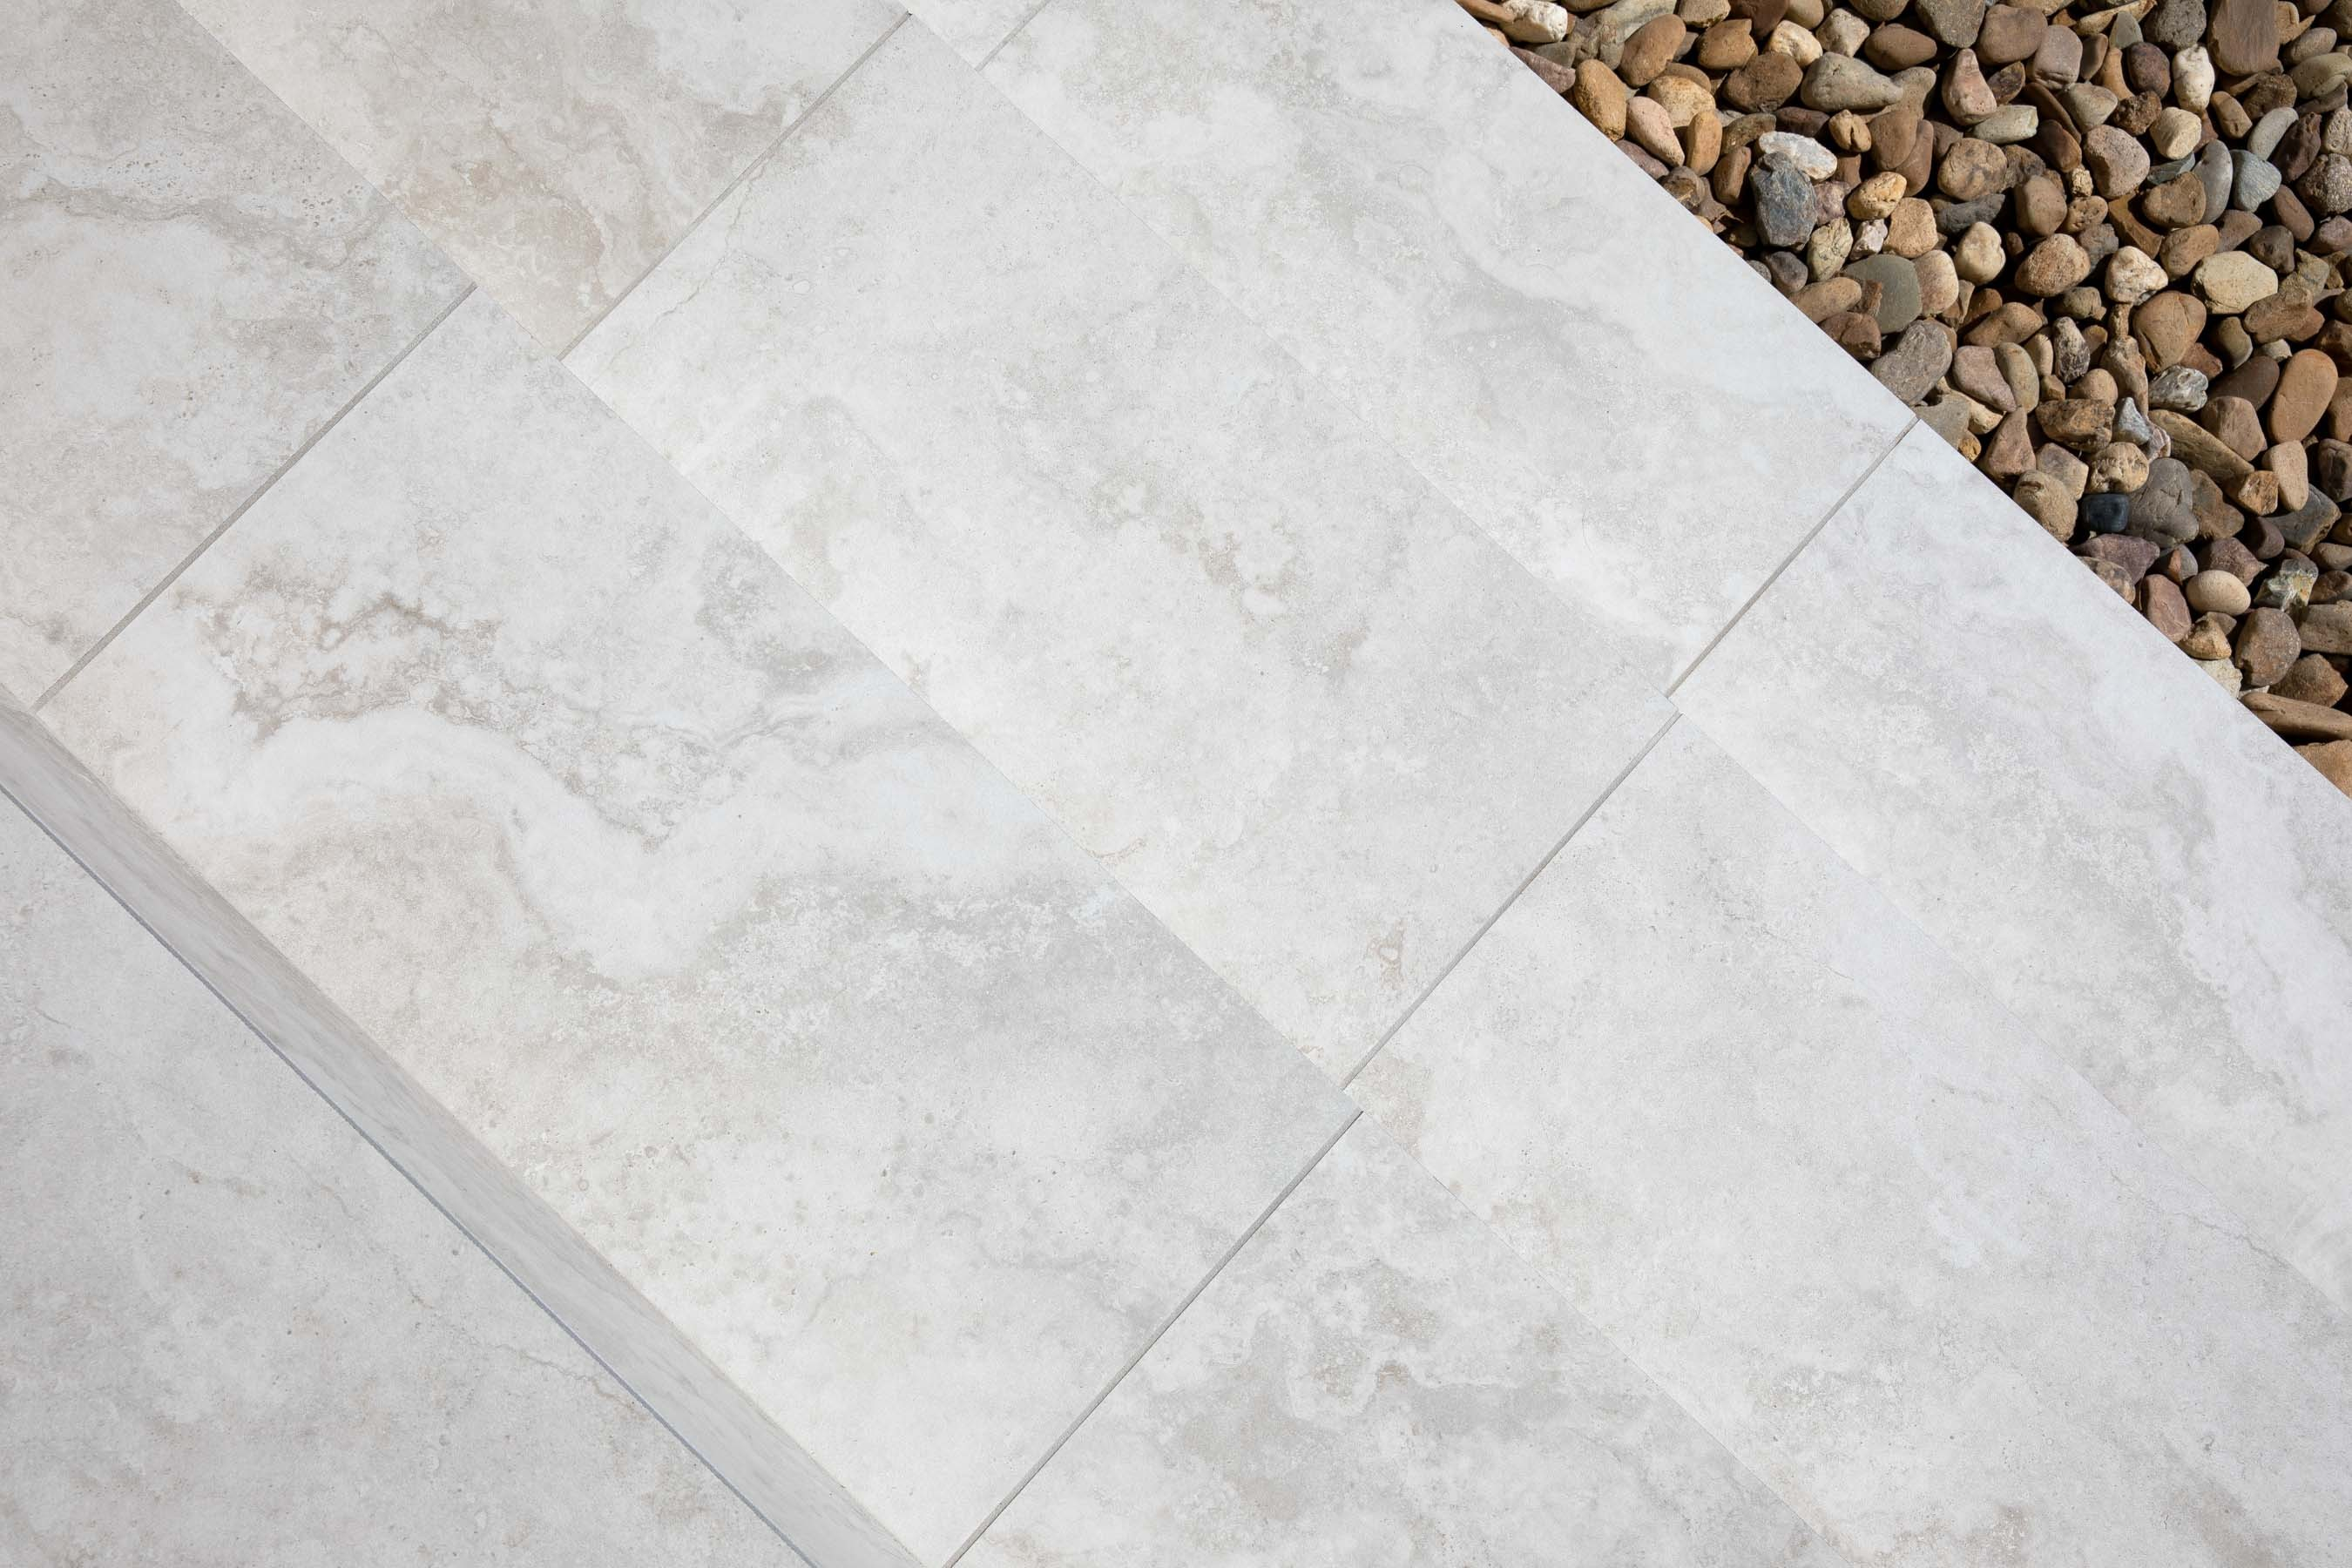 Porcelain-Pavers-Outdoor-20 Gallery silver-travertine-01